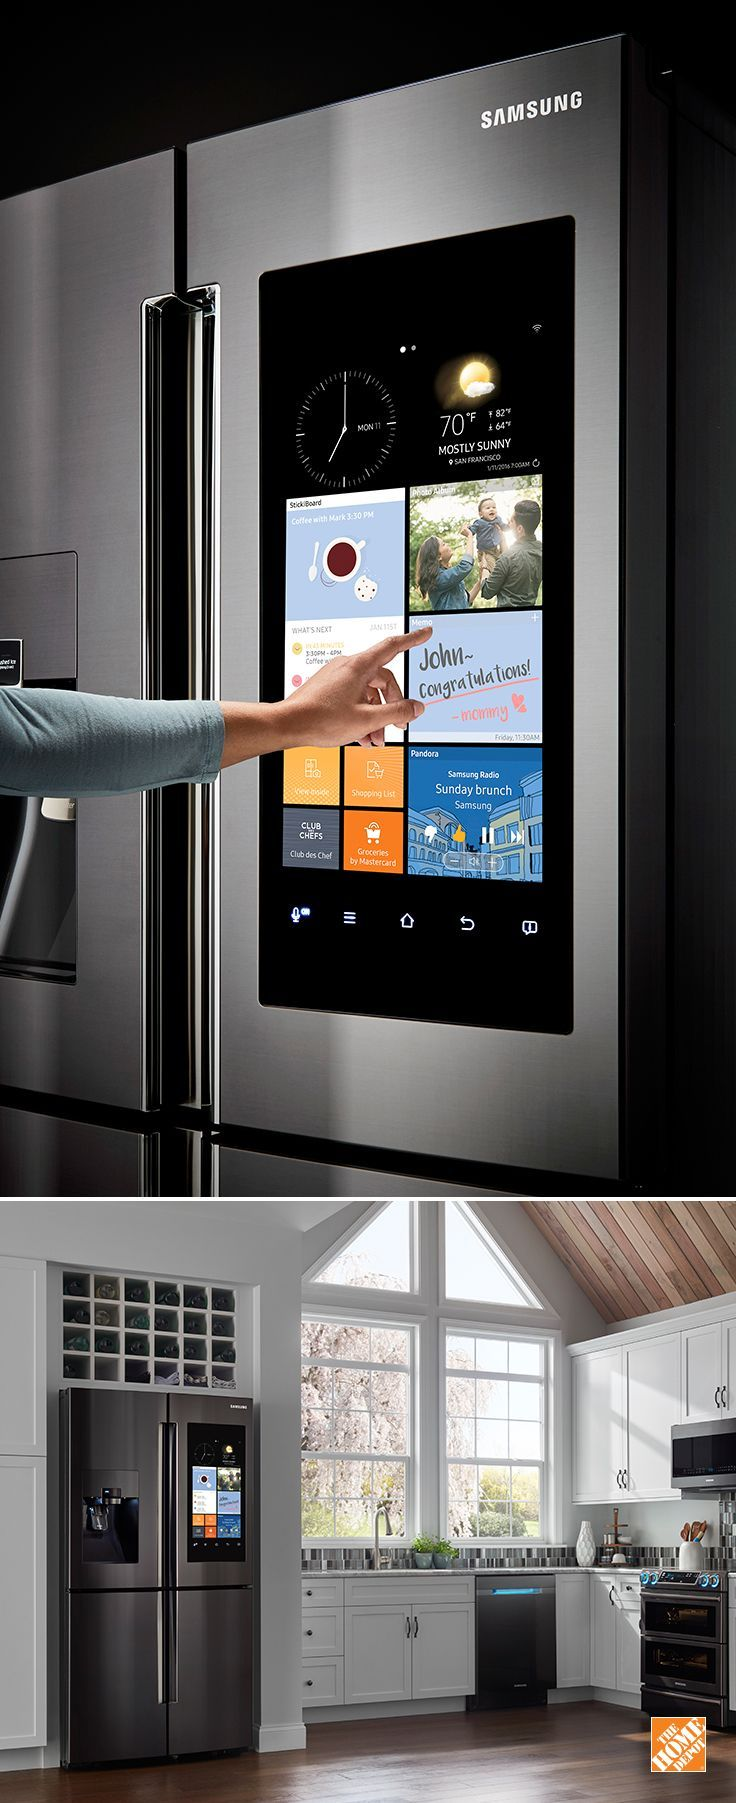 """Make the kitchen the center of your home. Samsung's Family Hub™ Refrigerator helps you manage your home and your life, with 3 Built-in cameras for food management, plus direct grocery ordering, share multiple calendars, photos and notes and Stream music, videos, mirror your TV – all controlled from a 21.5"""" Wi-Fi enabled touchscreen on a beautiful 4-door refrigerator."""